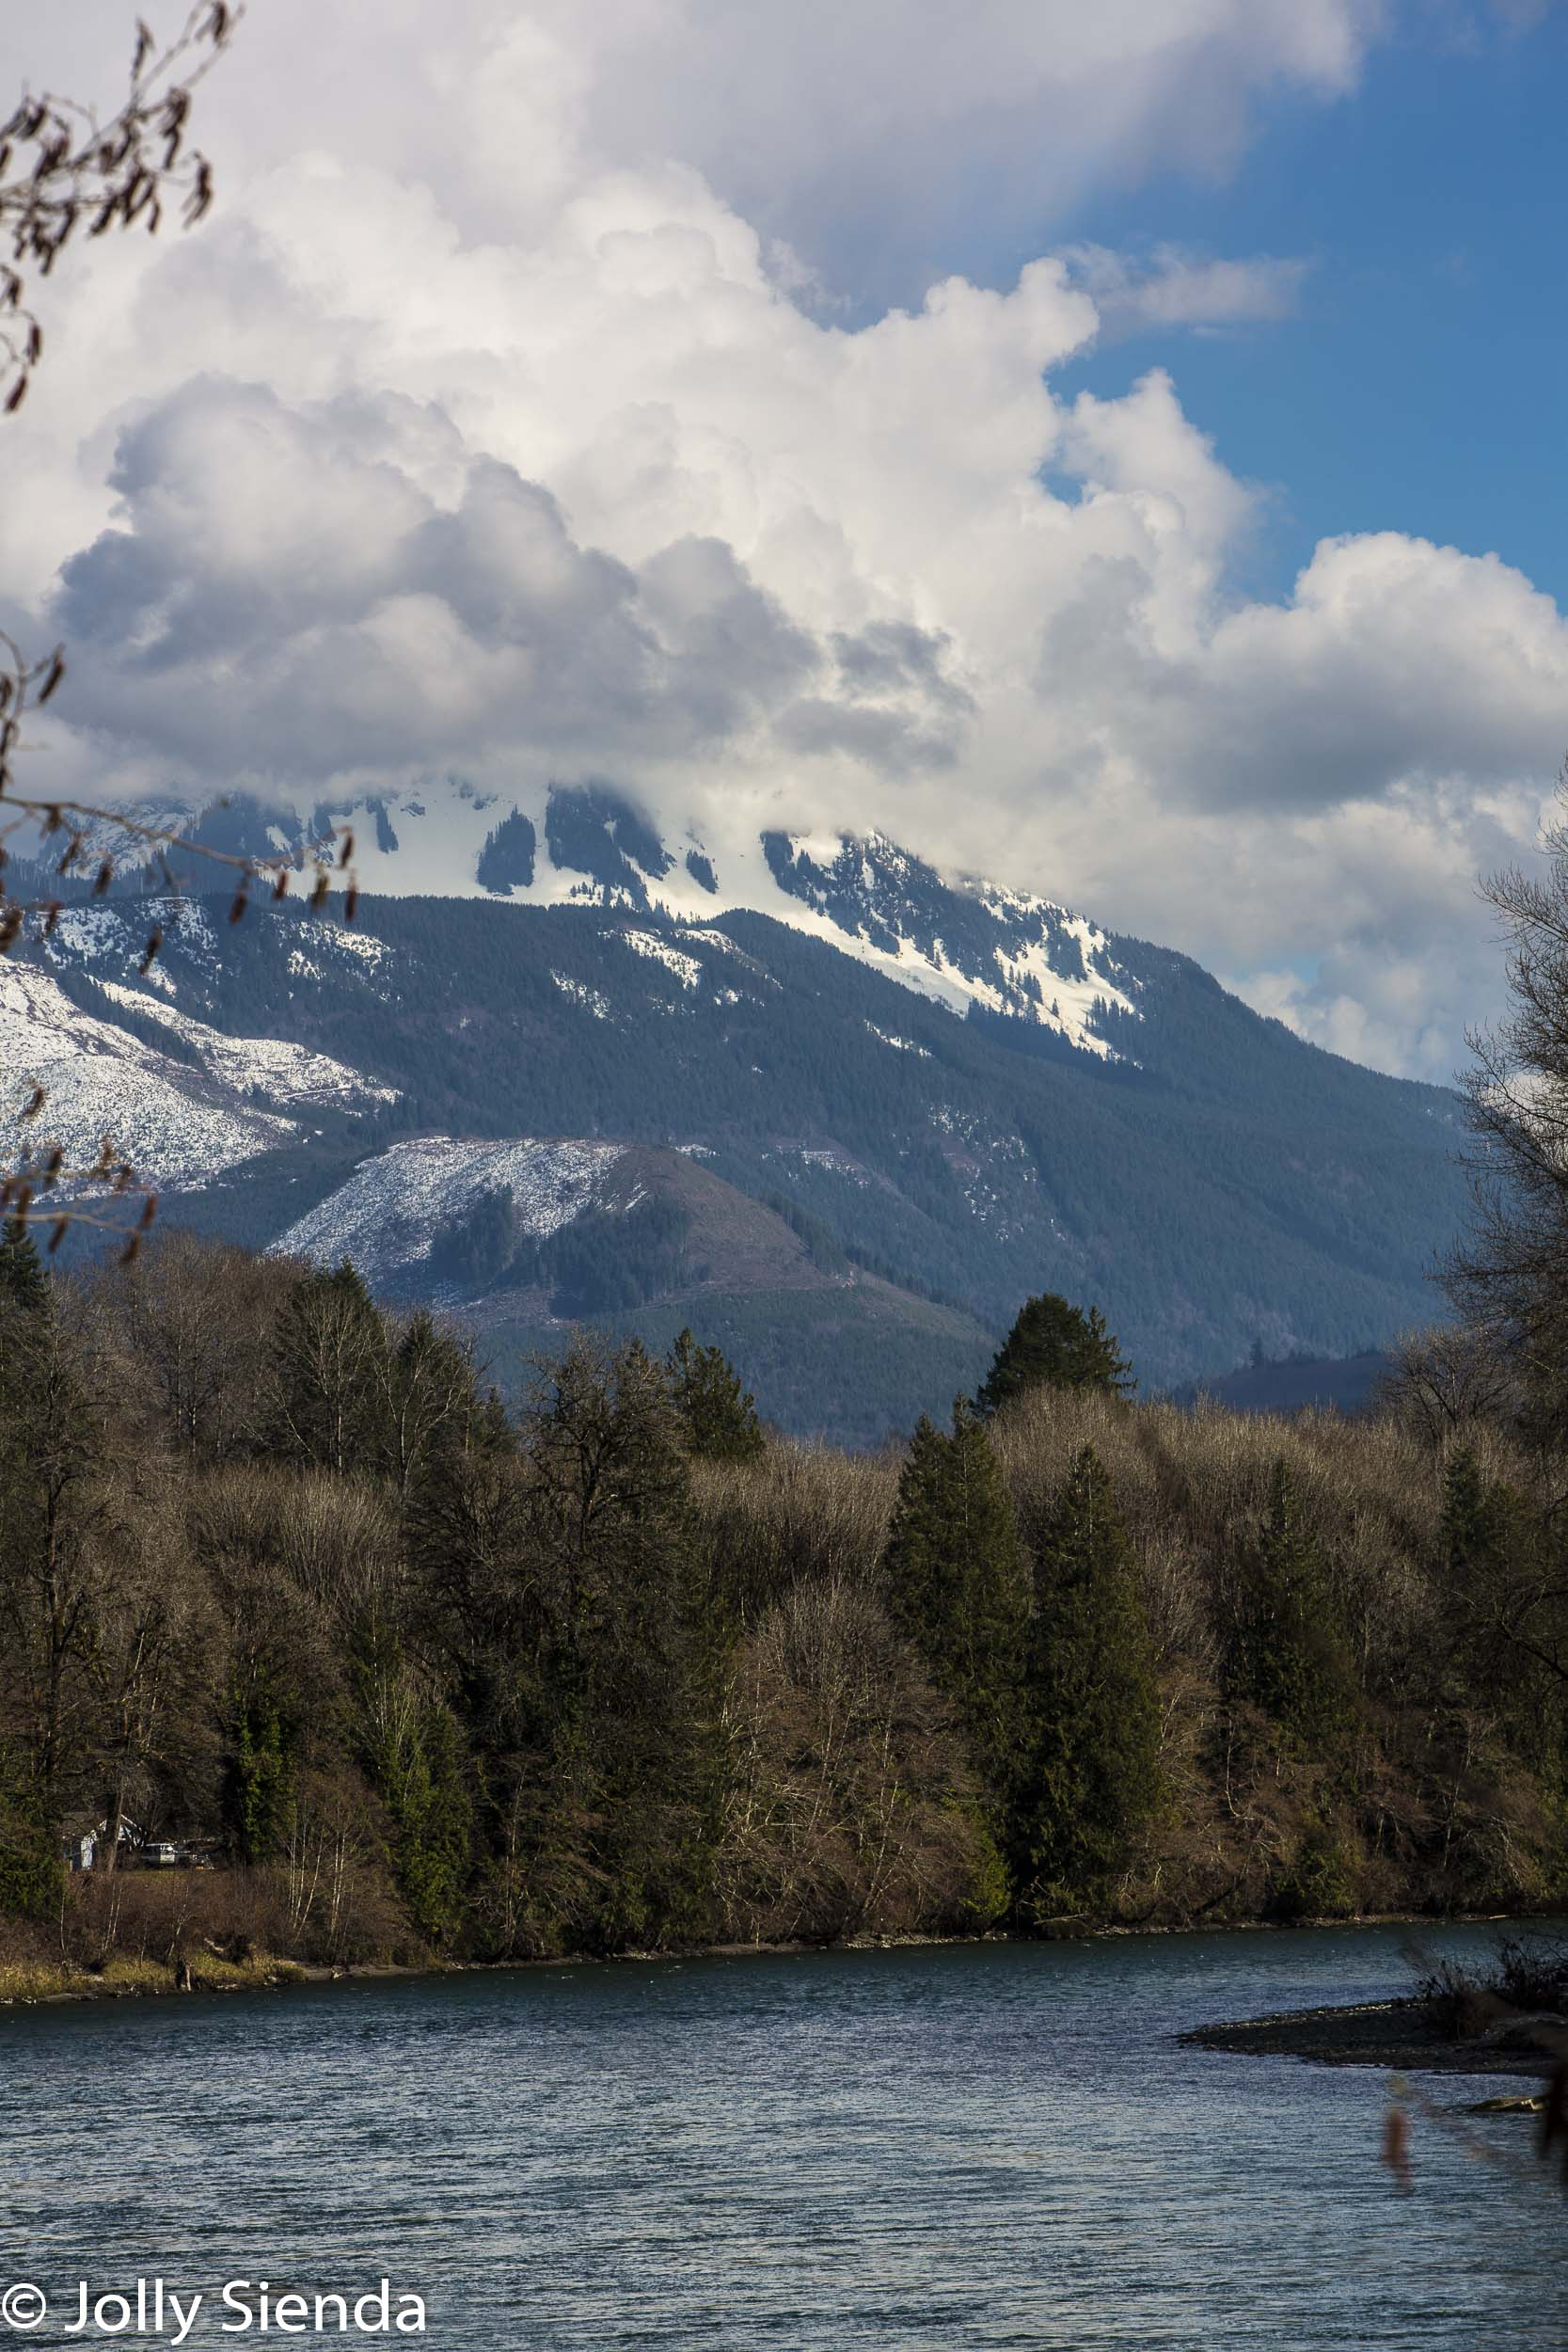 Snow topped Sauk Mountain over the Skagit River